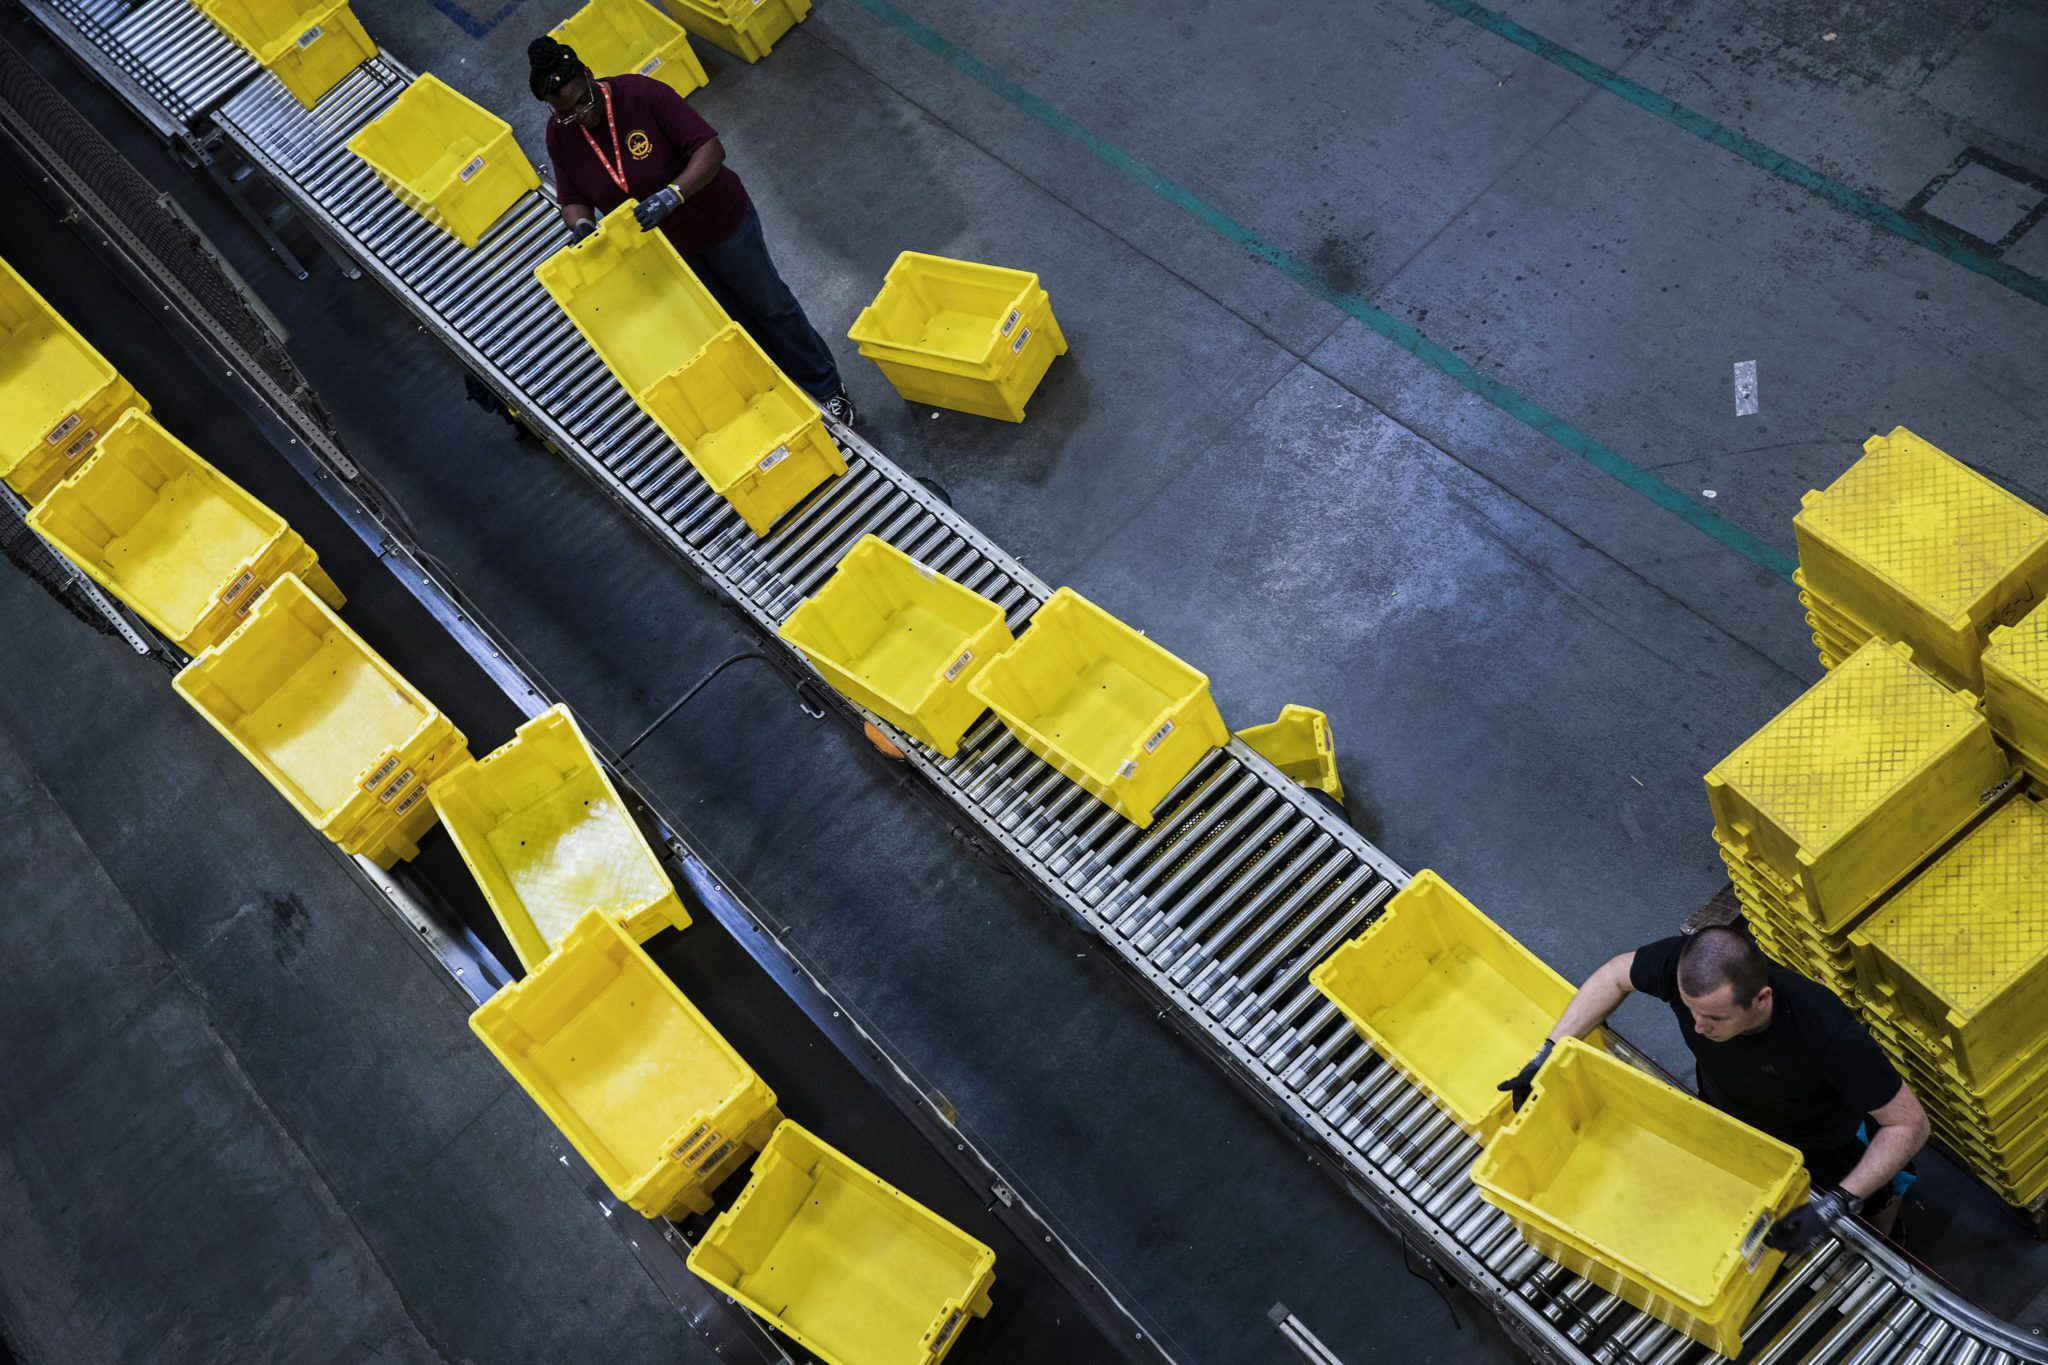 Employees organize plastic bins for orders at the Amazon.com Inc. fulfillment center in Robbinsville, New Jersey, U.S., on Monday, Nov. 27, 2017. The holiday shopping season is off to a strong start and retailers appear to be continuing the momentum today --CyberMonday-- the biggest online spending day of the year. Photographer: Victor J. Blue/Bloomberg via Getty Images